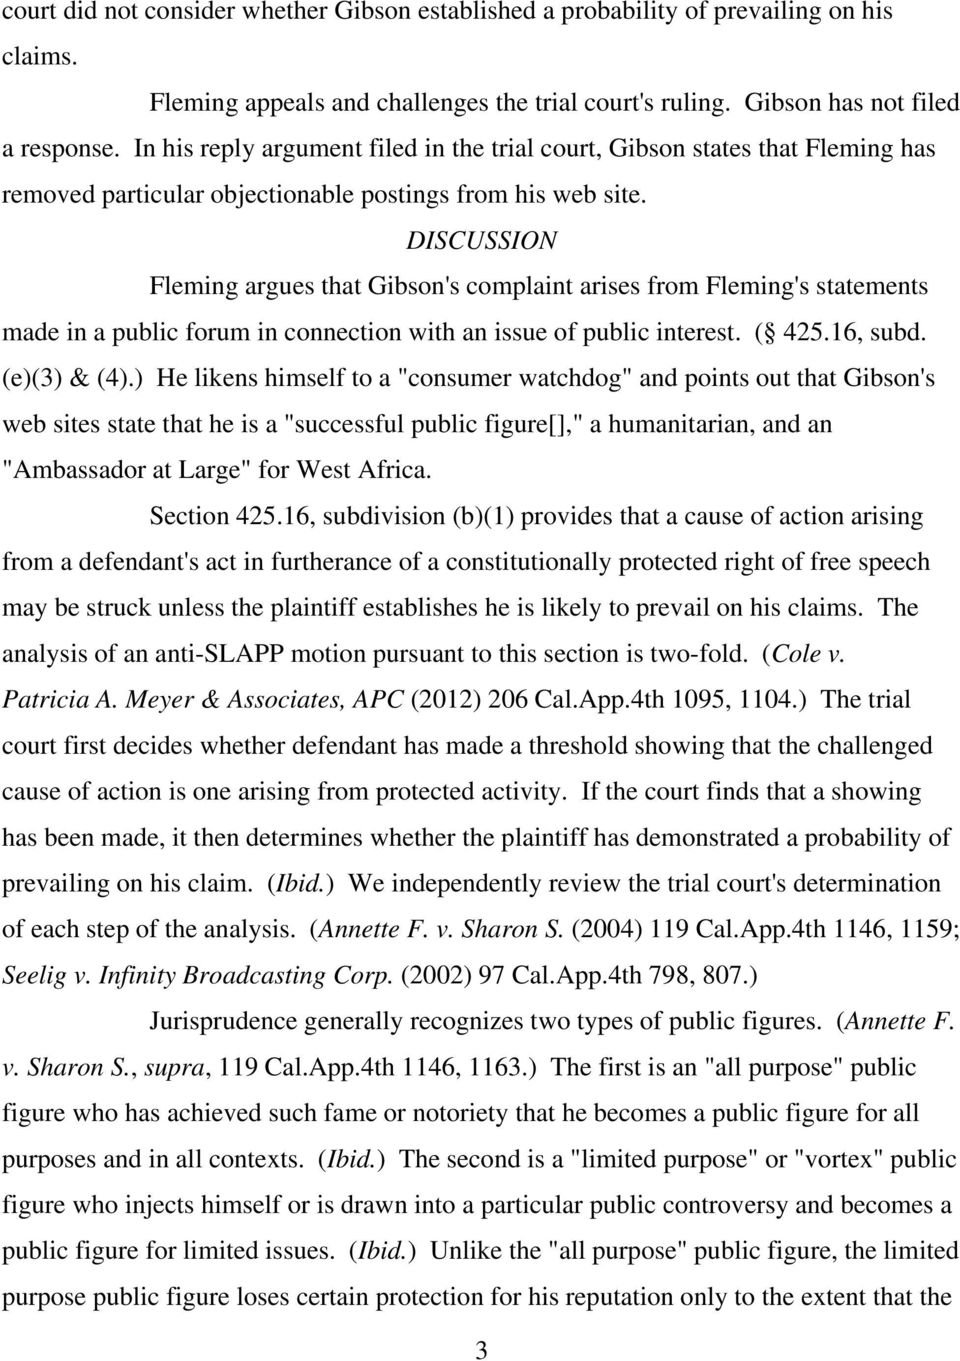 DISCUSSION Fleming argues that Gibson's complaint arises from Fleming's statements made in a public forum in connection with an issue of public interest. ( 425.16, subd. (e)(3) & (4).